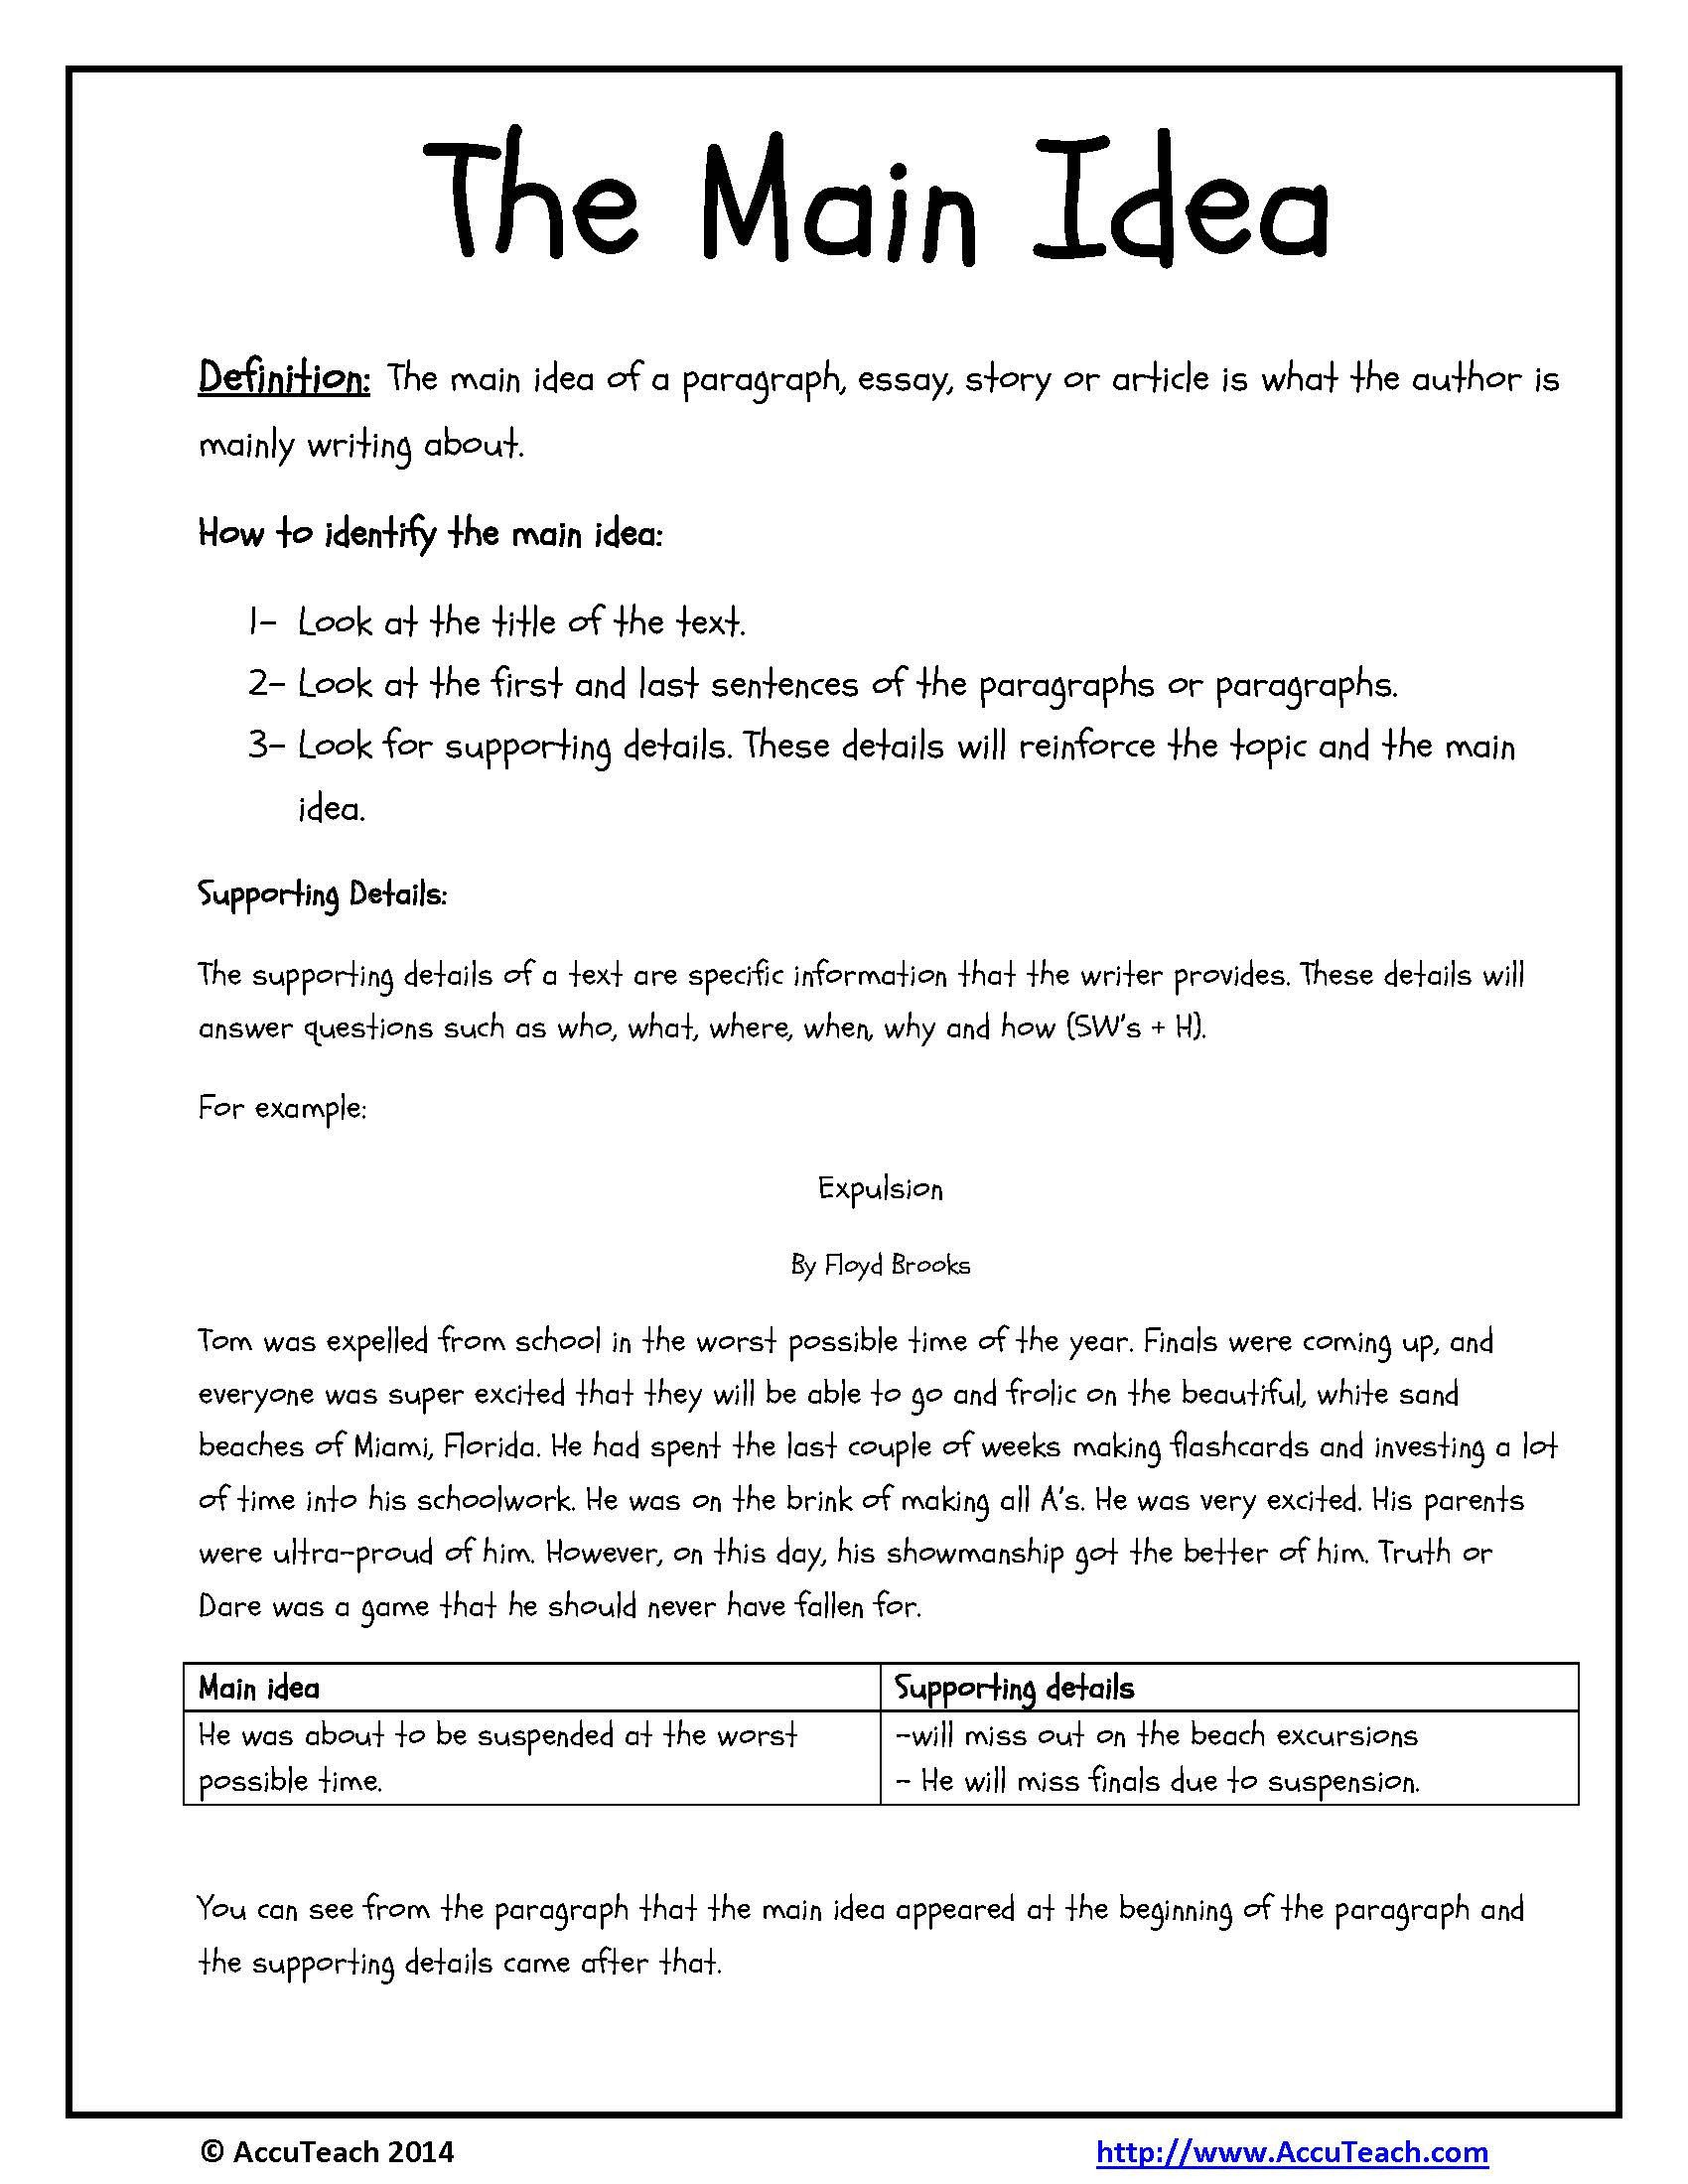 3rd Grade Main Idea Worksheets Find the Main Idea Worksheet